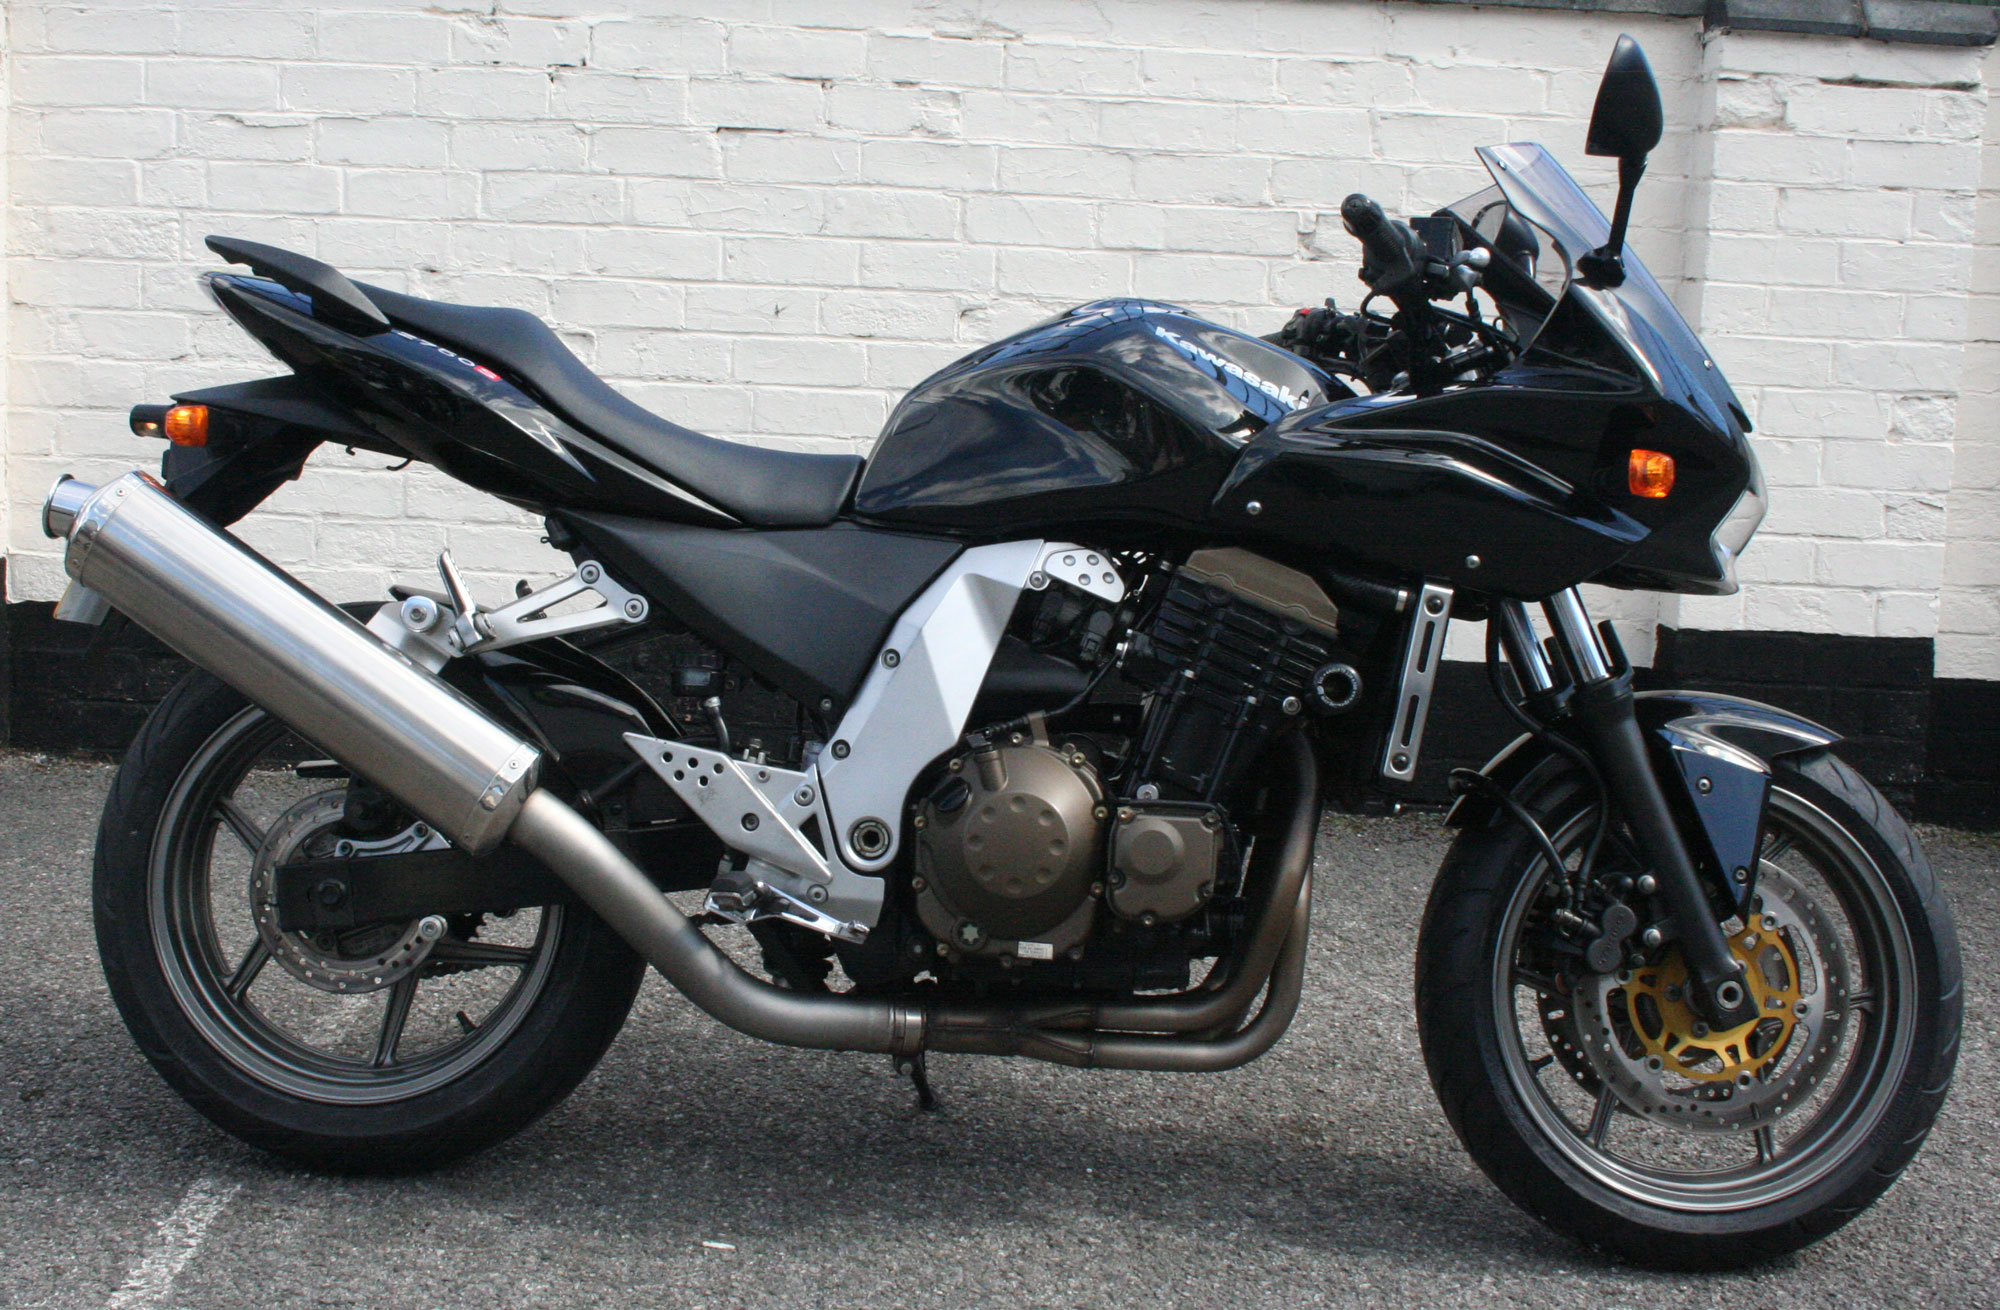 kawasaki z750 s k6f for sale mansfield nottinghamshire leicestershire derbyshire. Black Bedroom Furniture Sets. Home Design Ideas